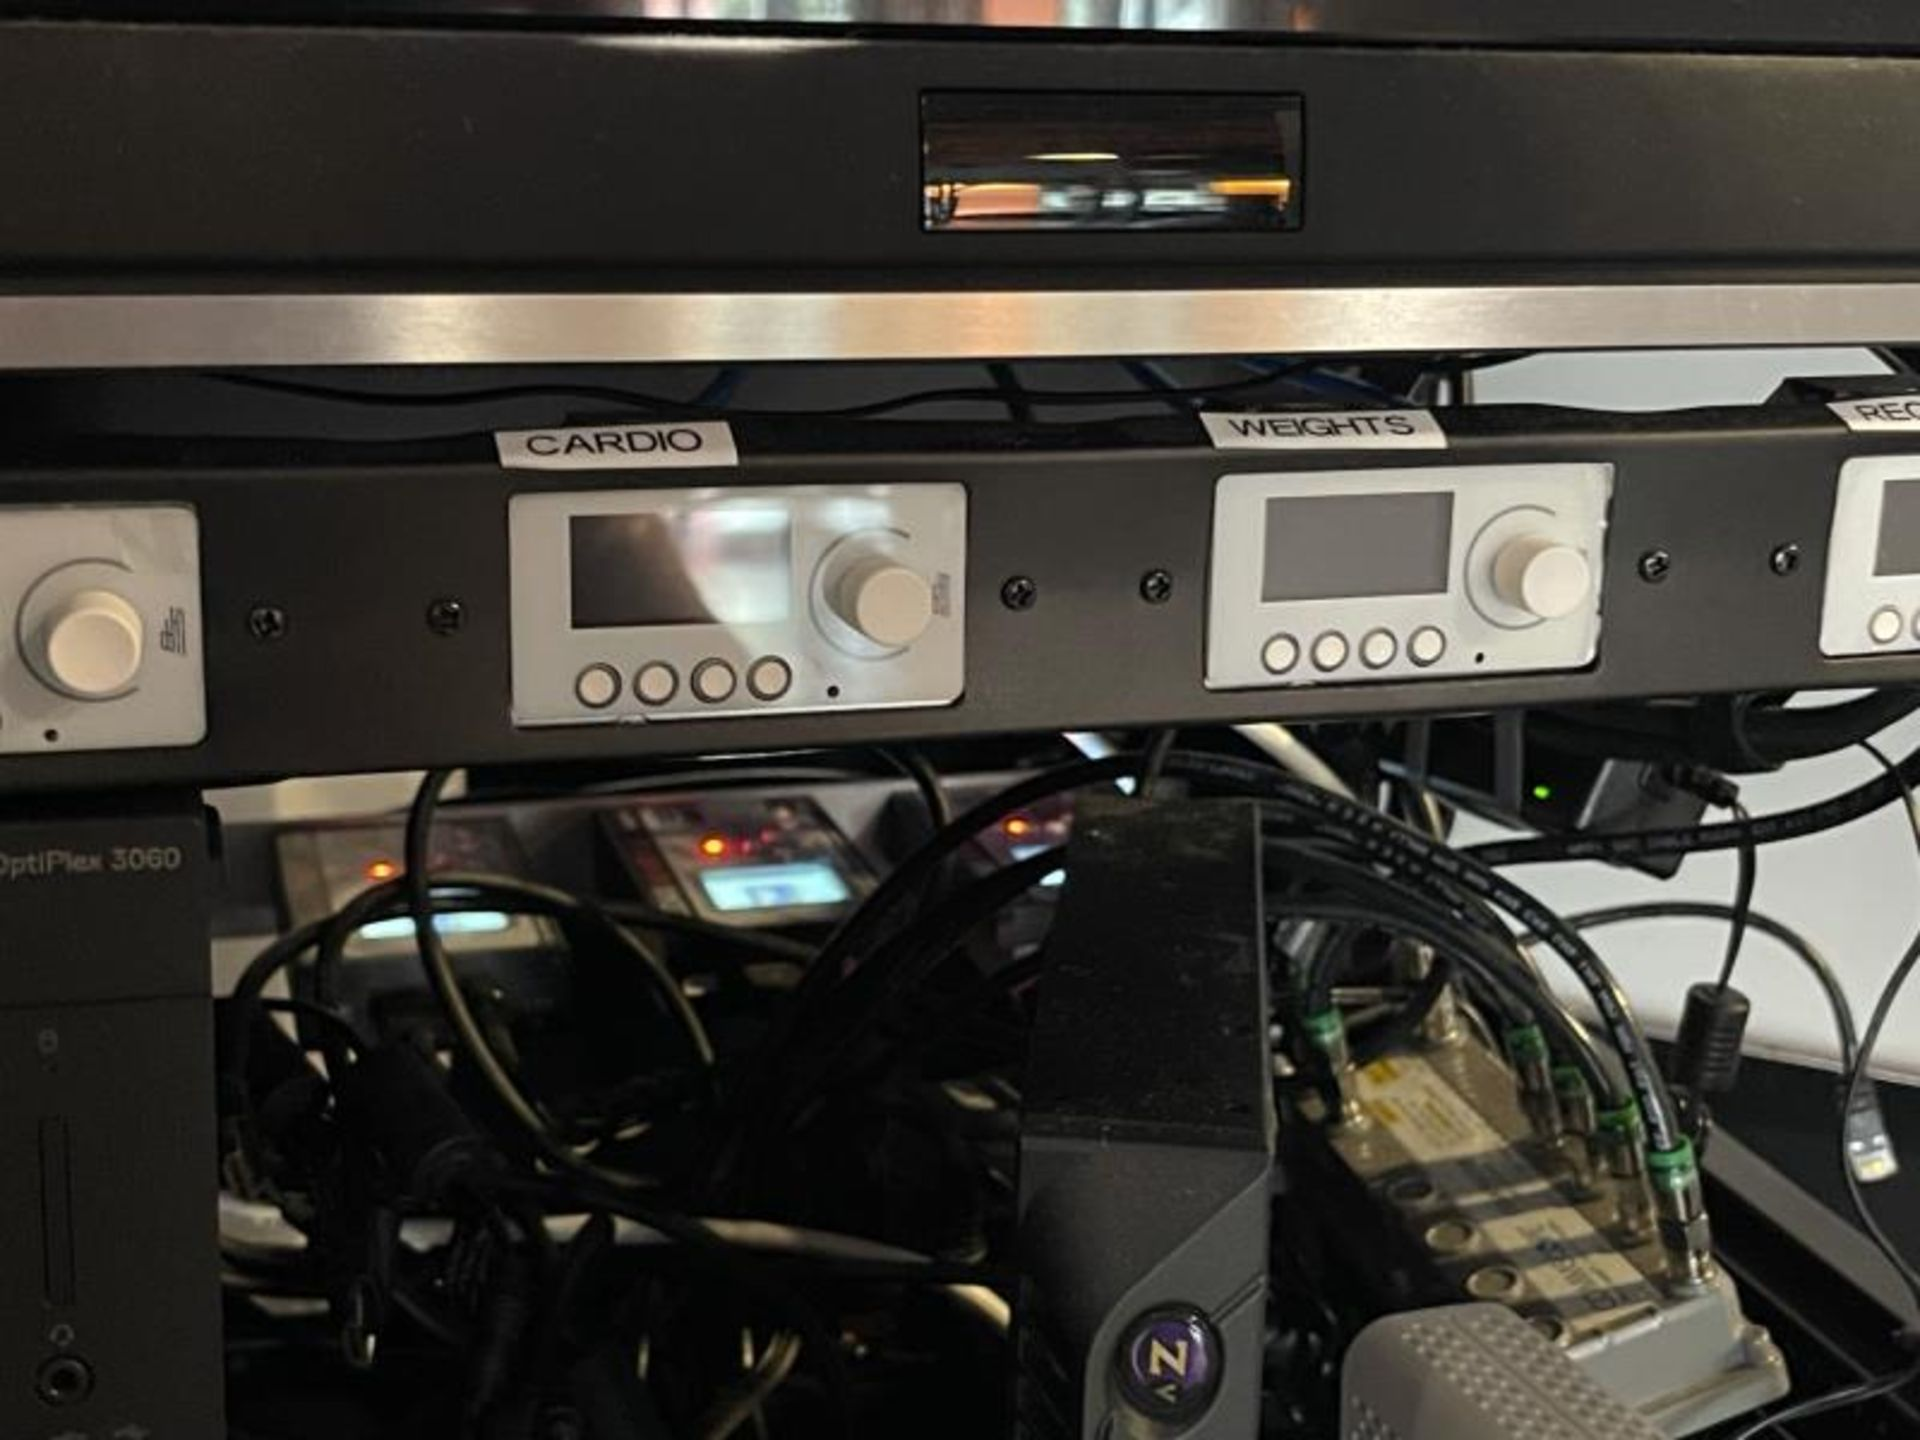 Electornics Cabinet by Strong , Made 2018 w/ Luma Network Box, OVRC Enabled LUM-500-DVR-16CH, (2) Wa - Image 8 of 18